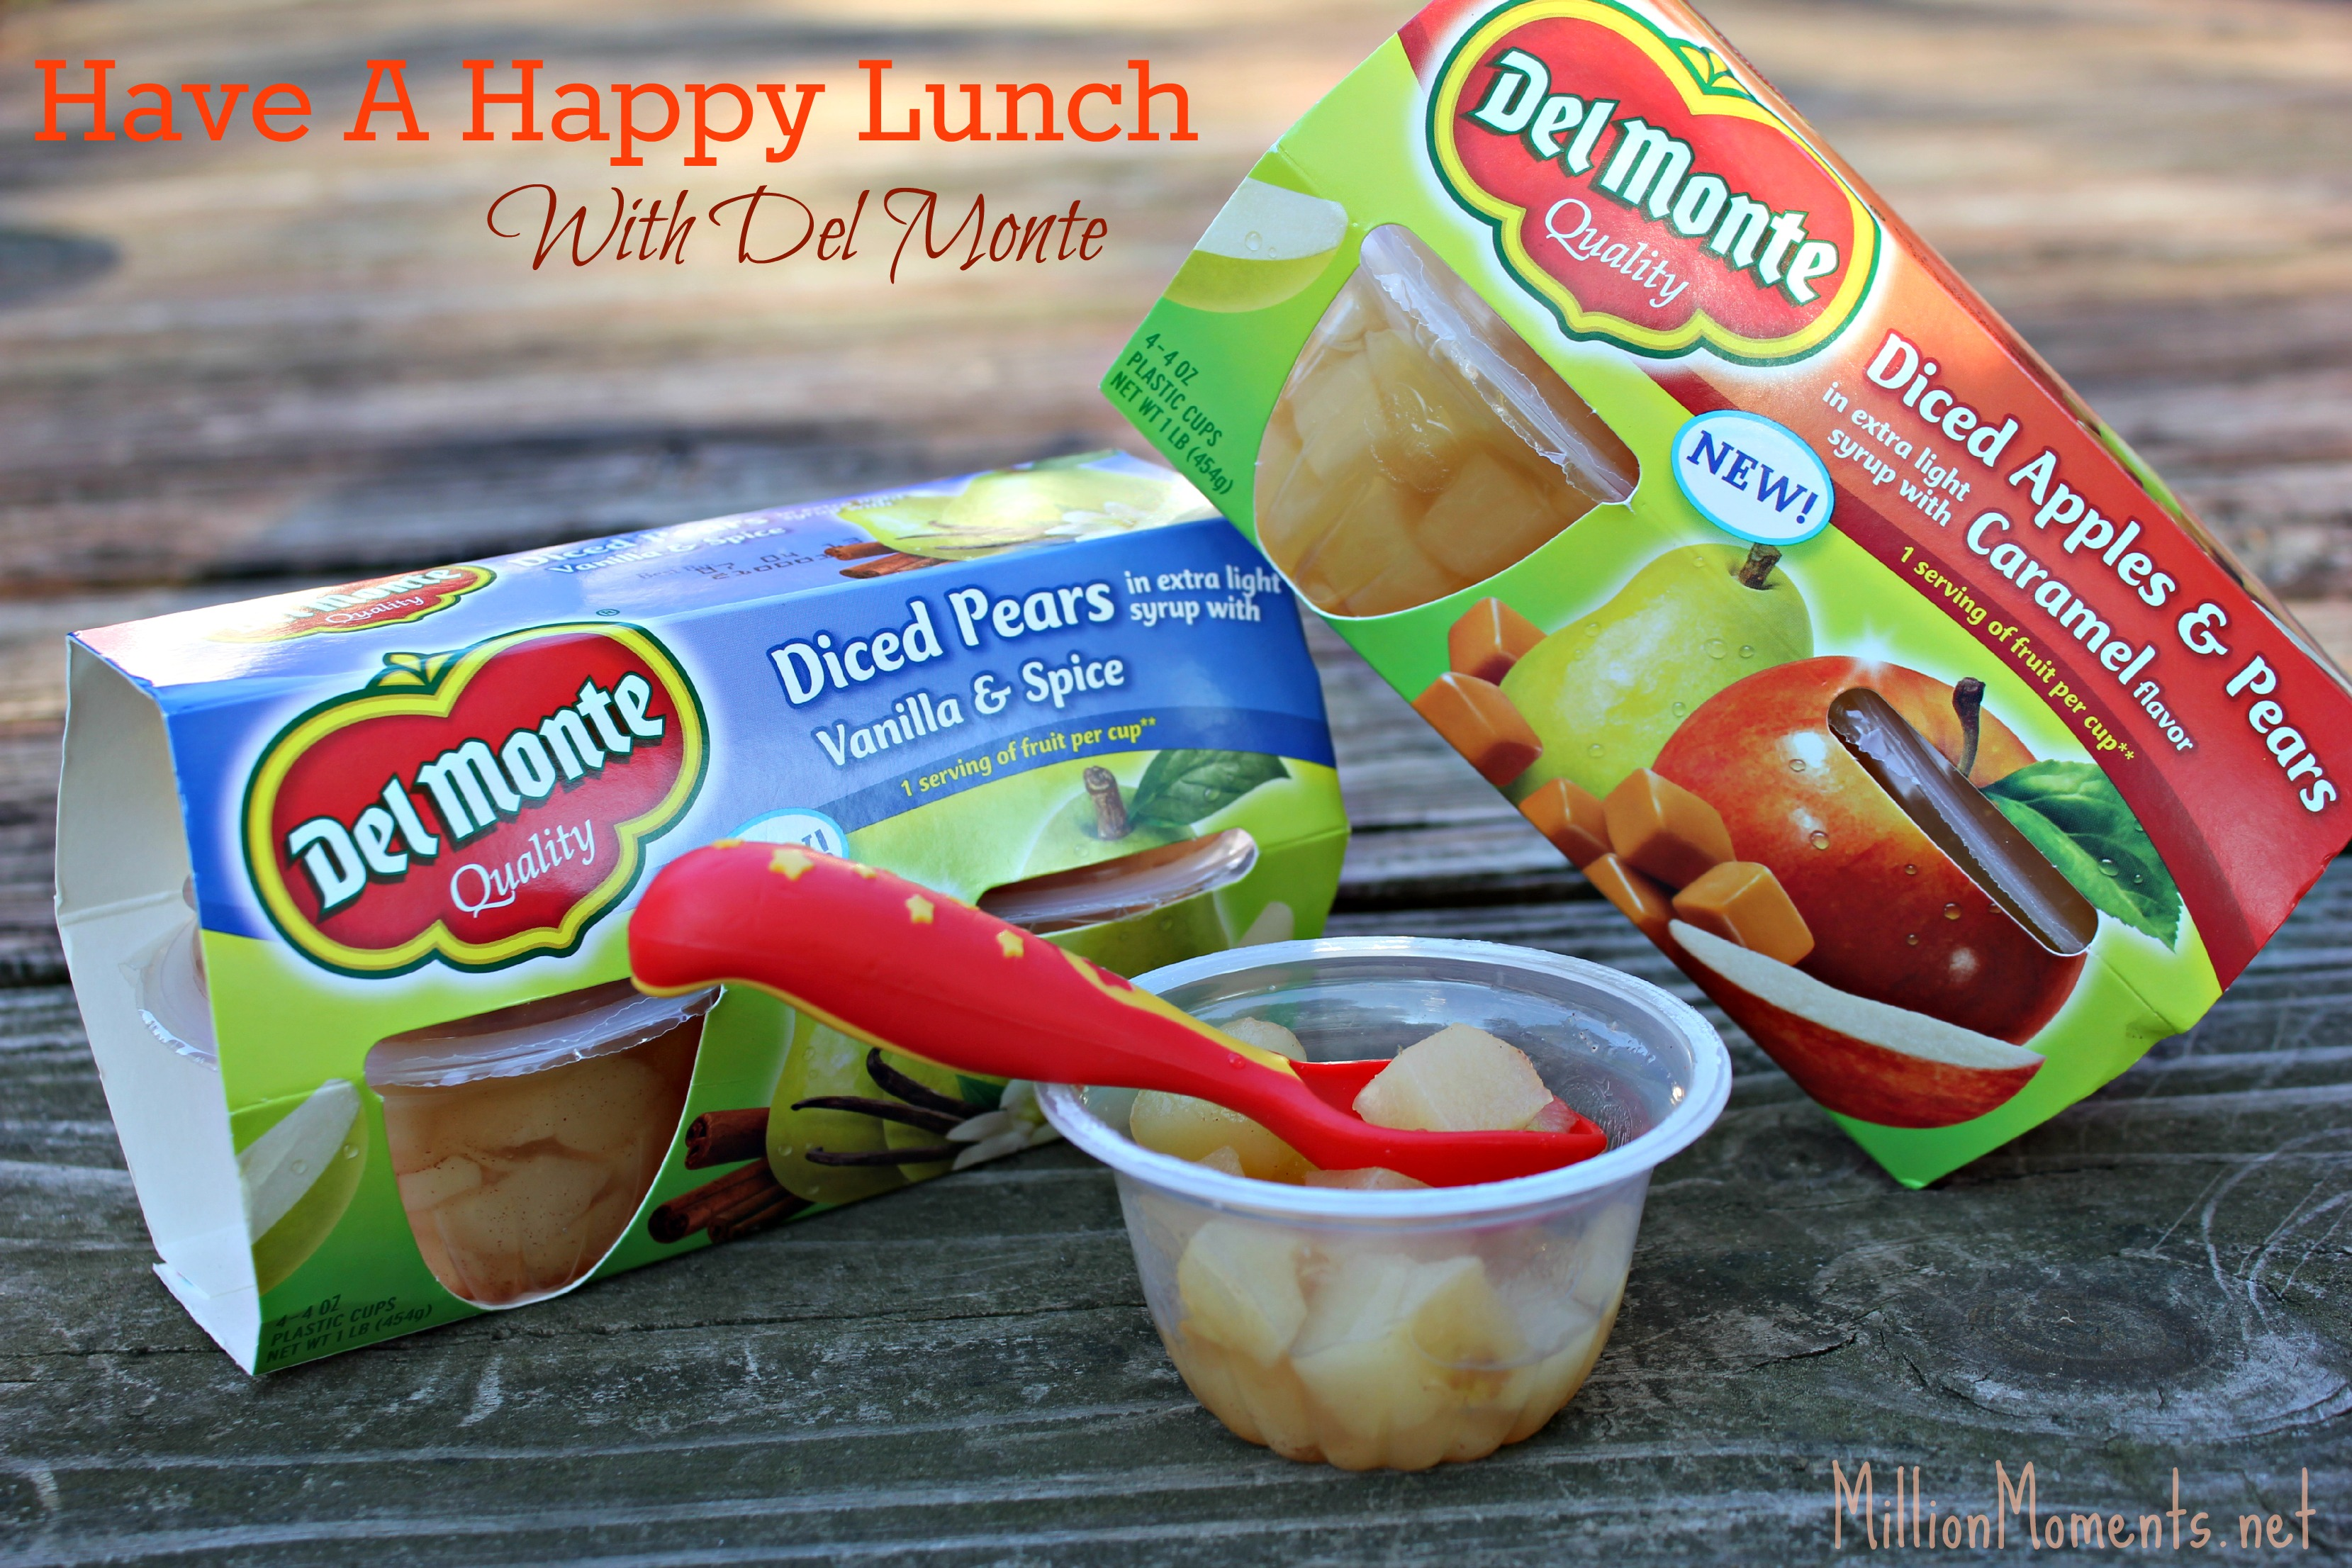 Have A Happy Lunch With Del Monte!